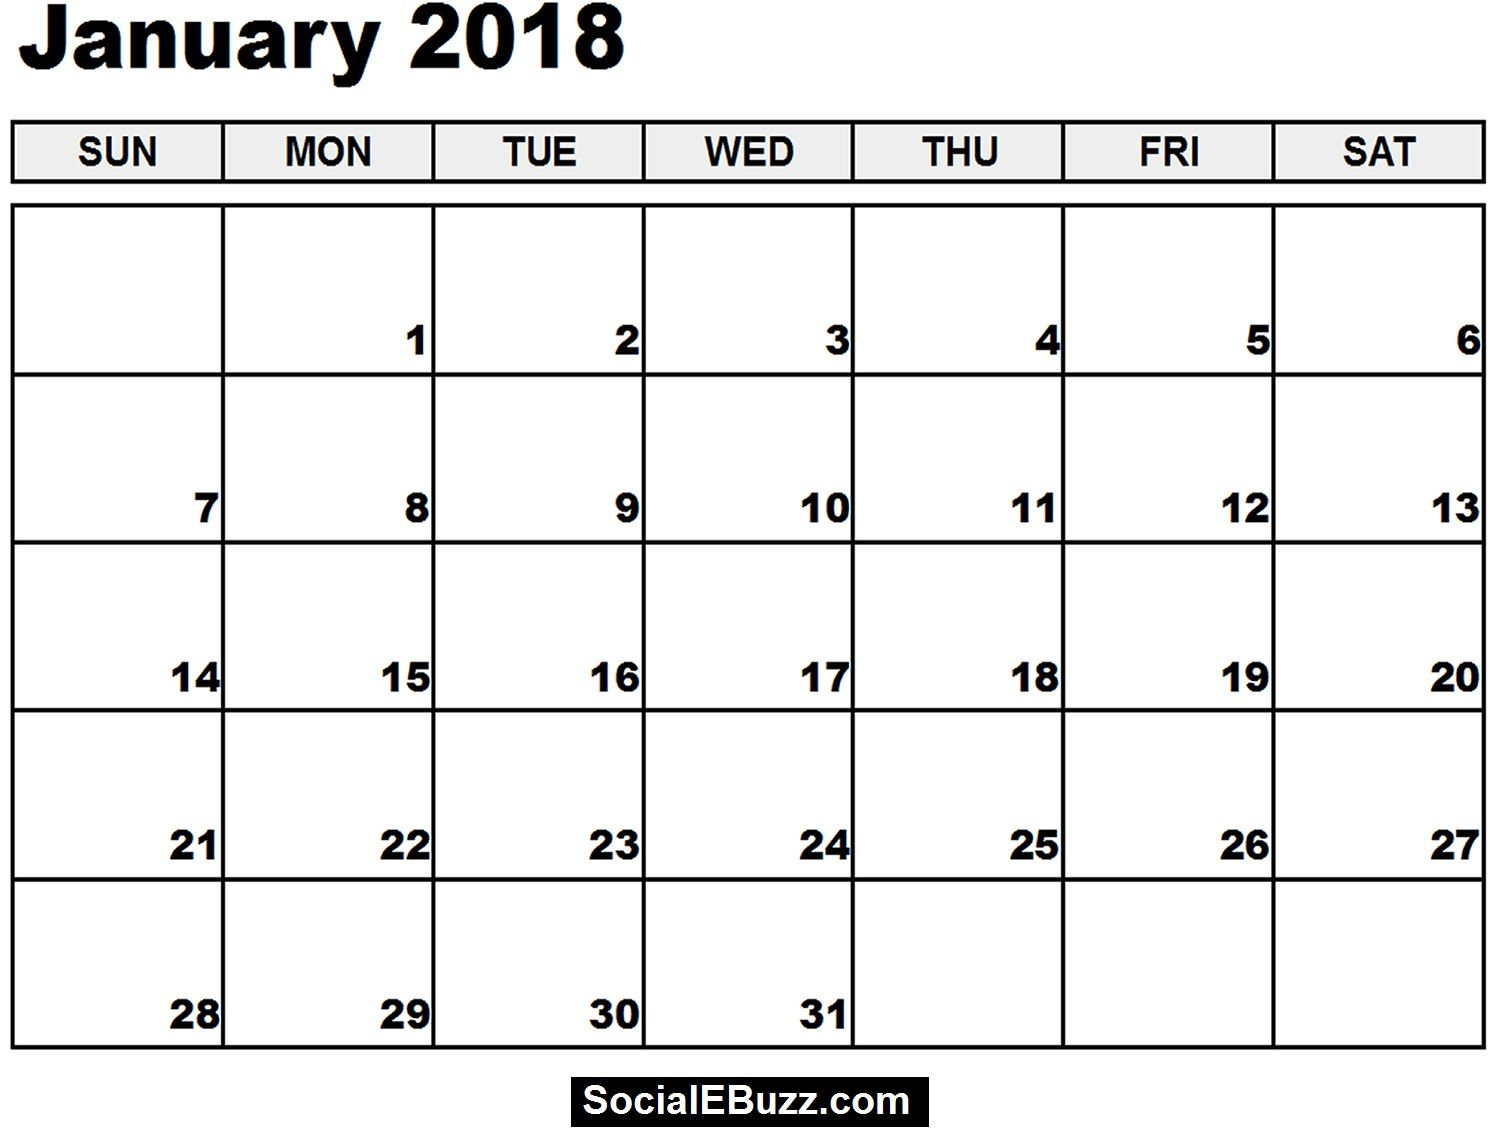 January 2018 Calendar Printable Template, January Calendar 2018 , 2018  January Calendar , January Calendar